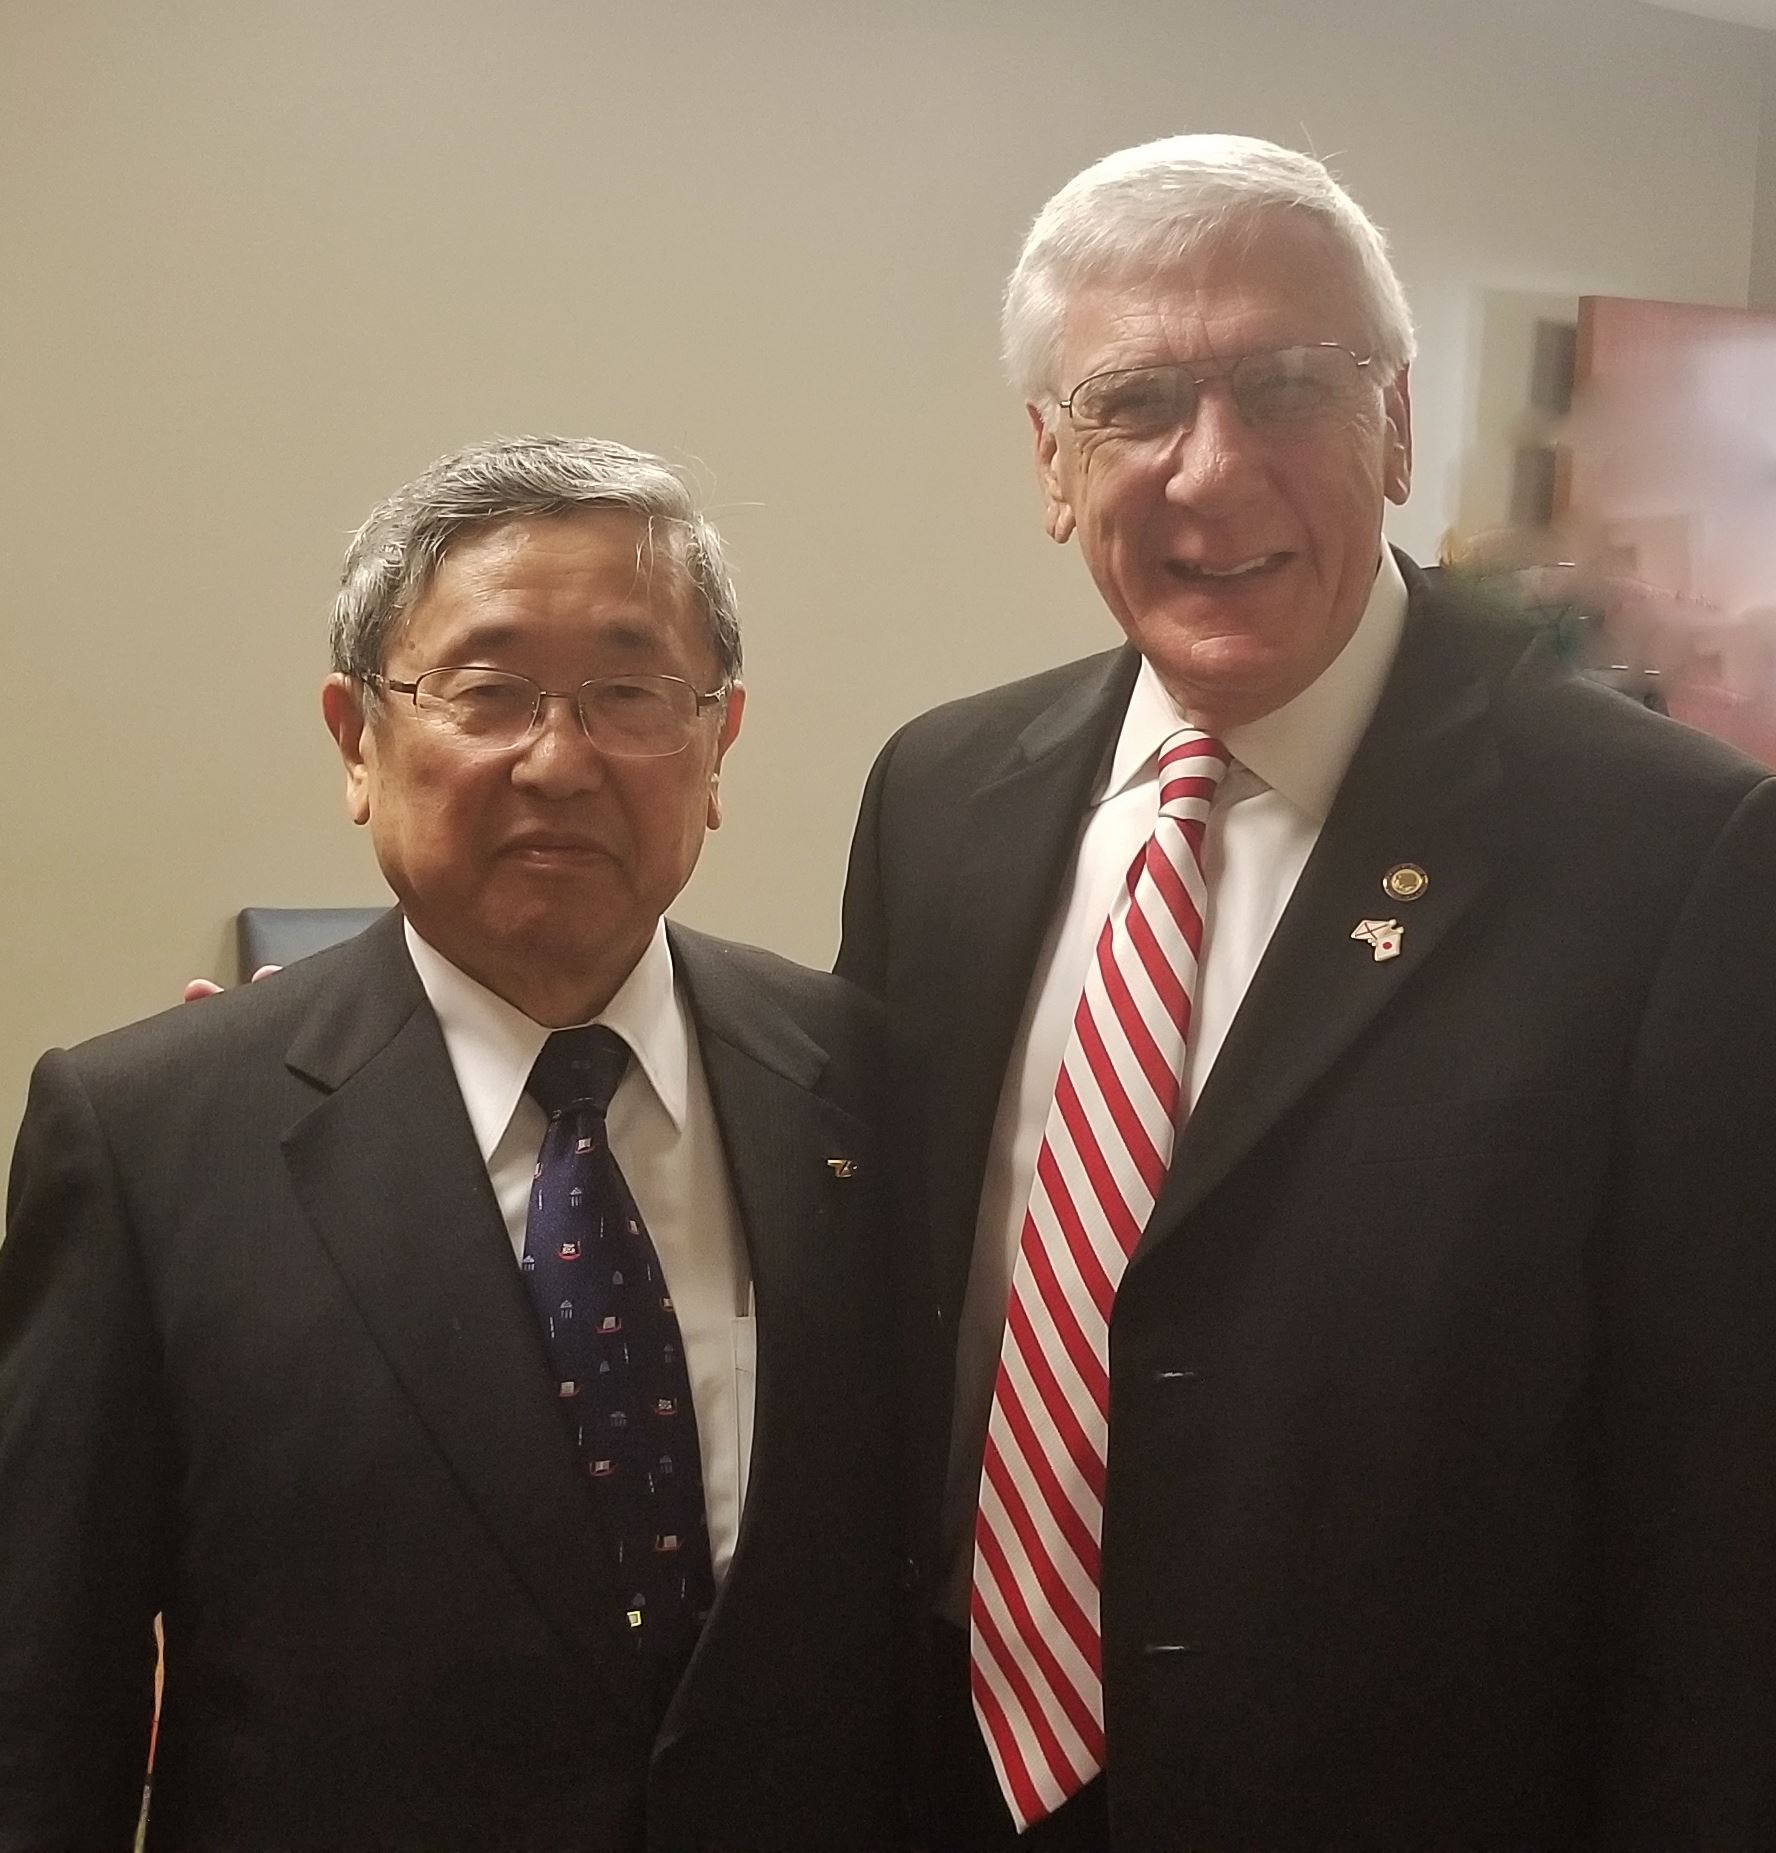 Dr. Toyoda and Mayor Marks